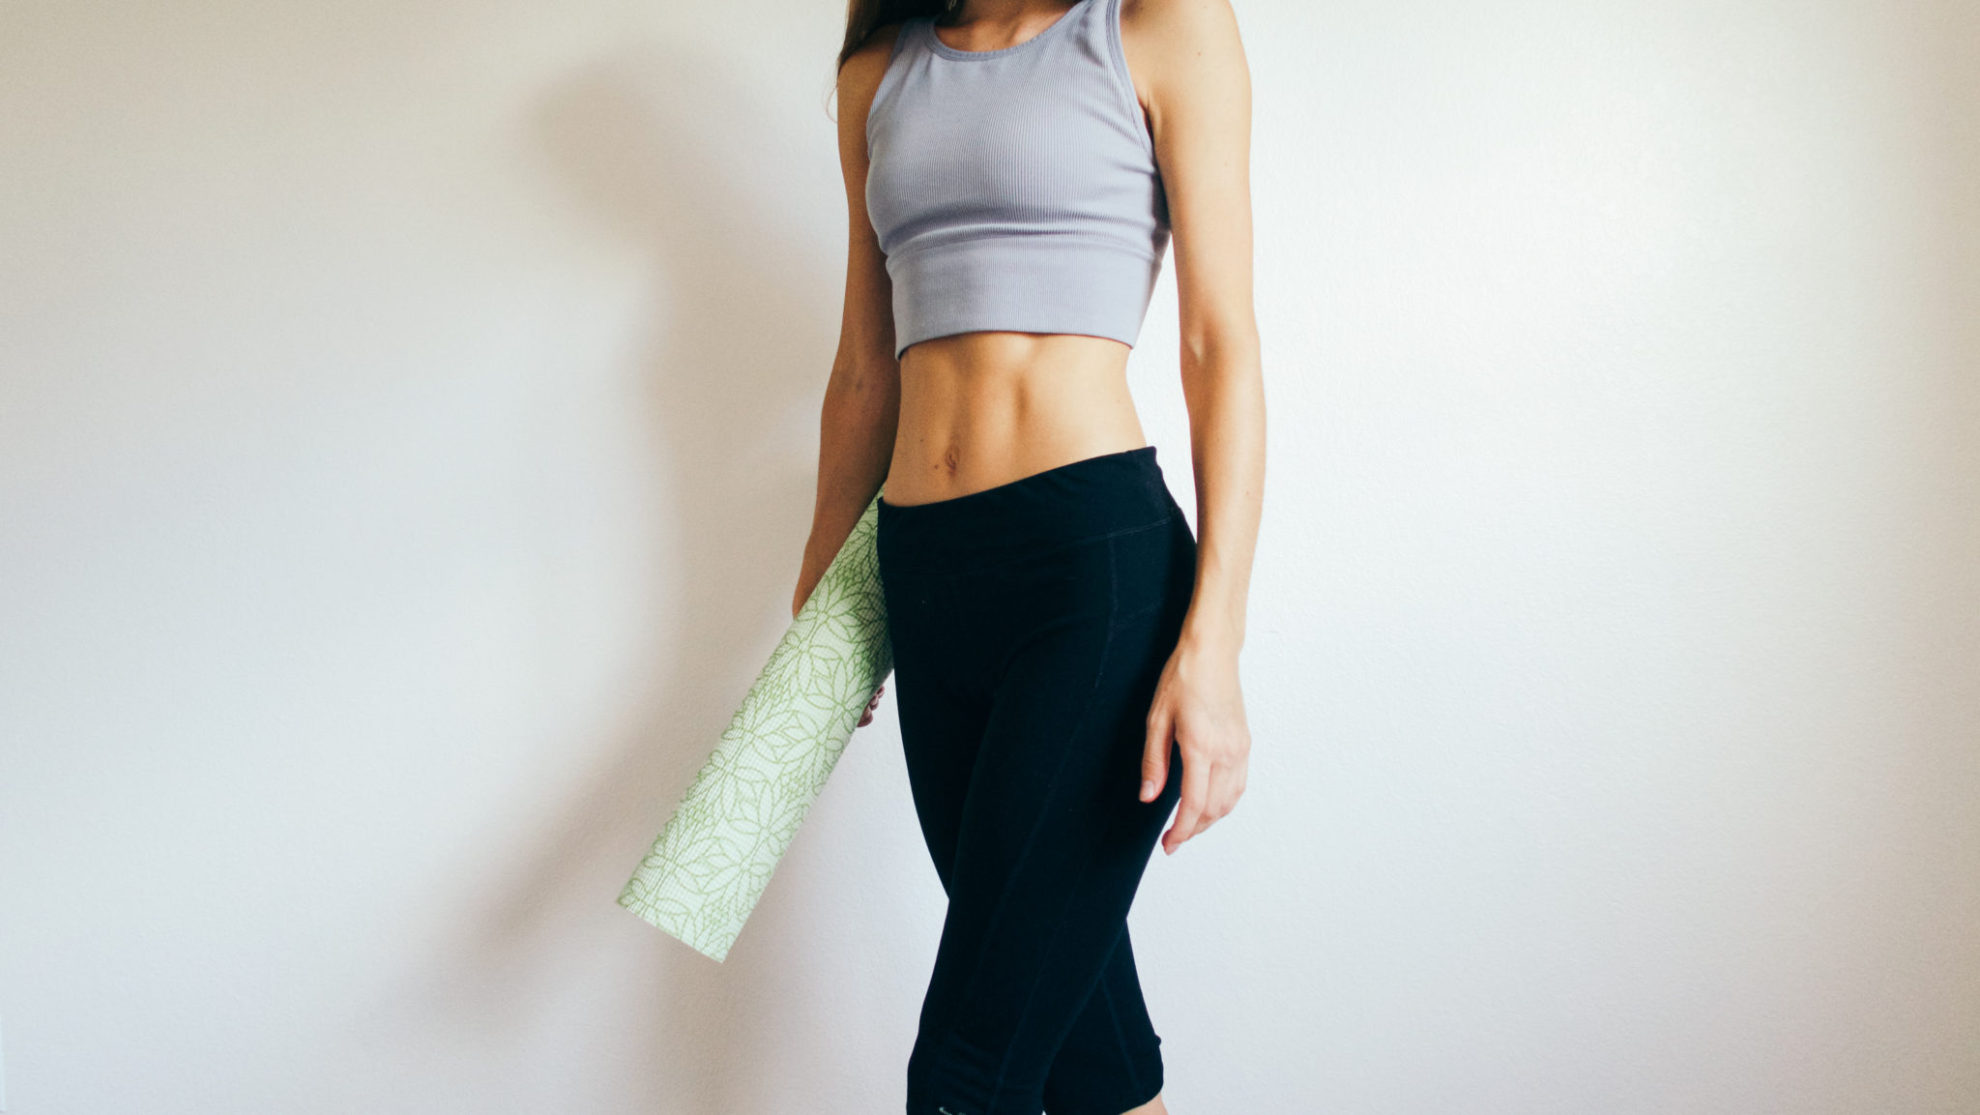 4 Super Easy Moves to Get Killer Abs